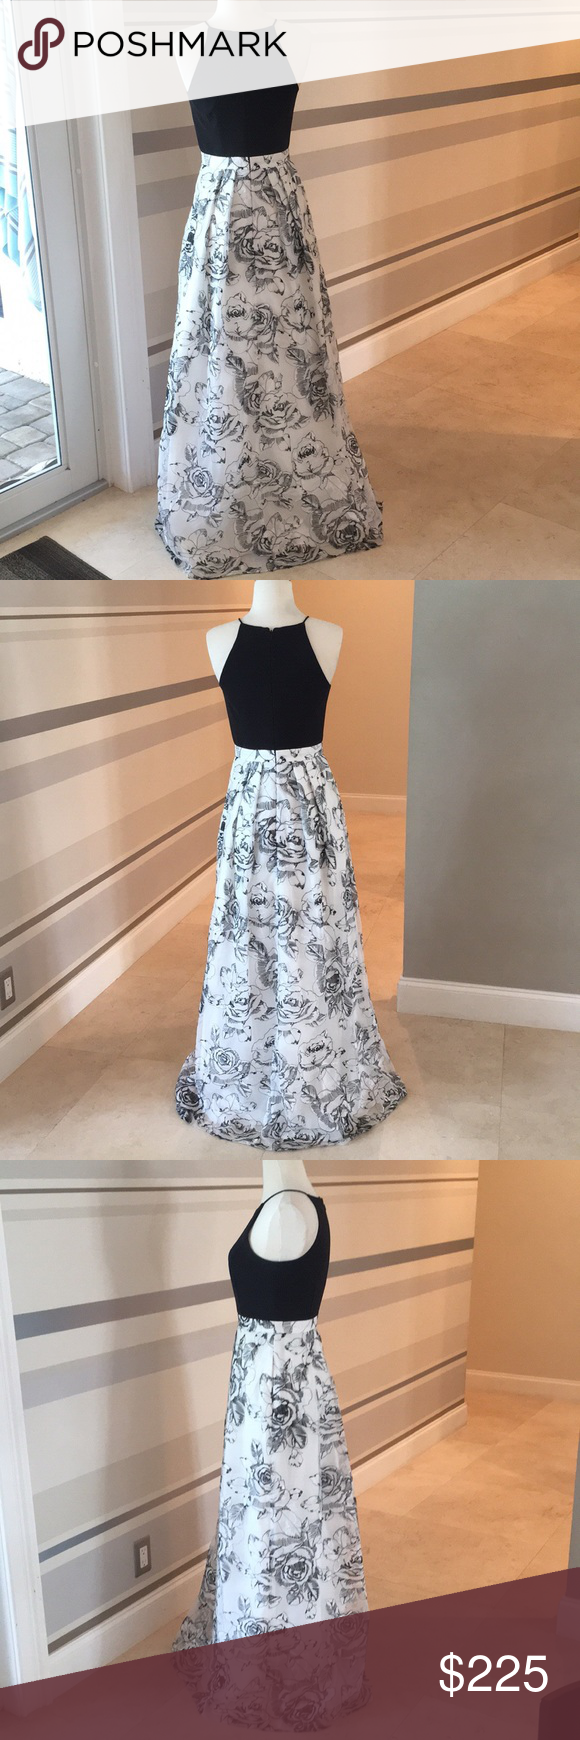 Black and white roses prom dress size